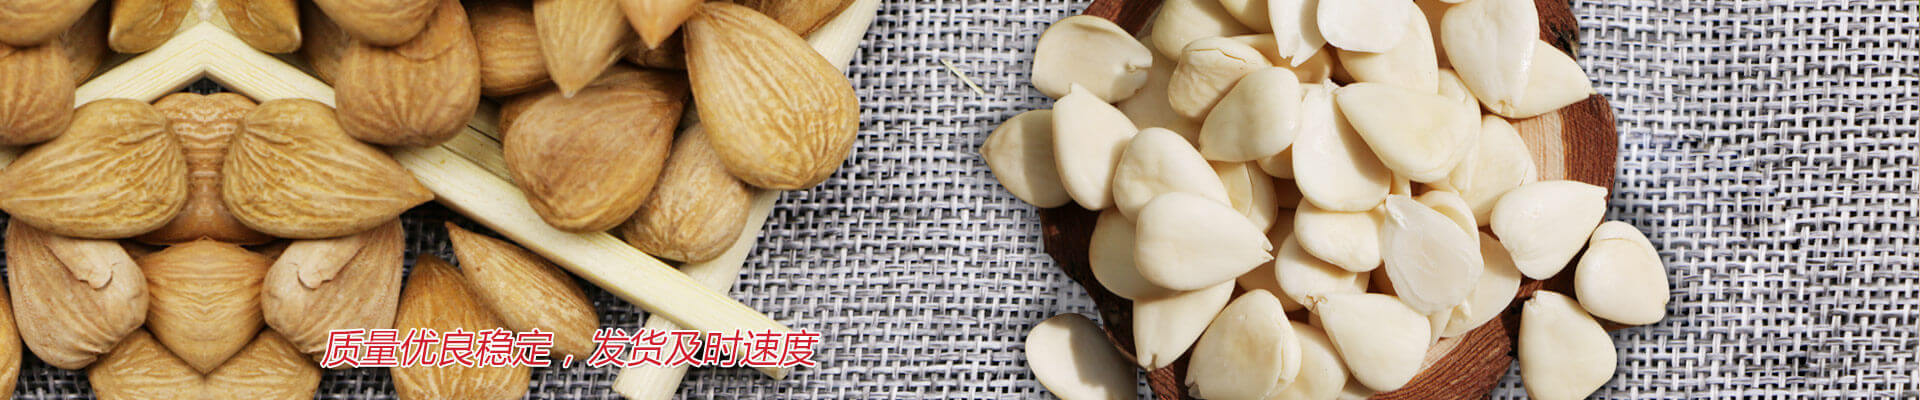 Yongchangyuan Kernel Food